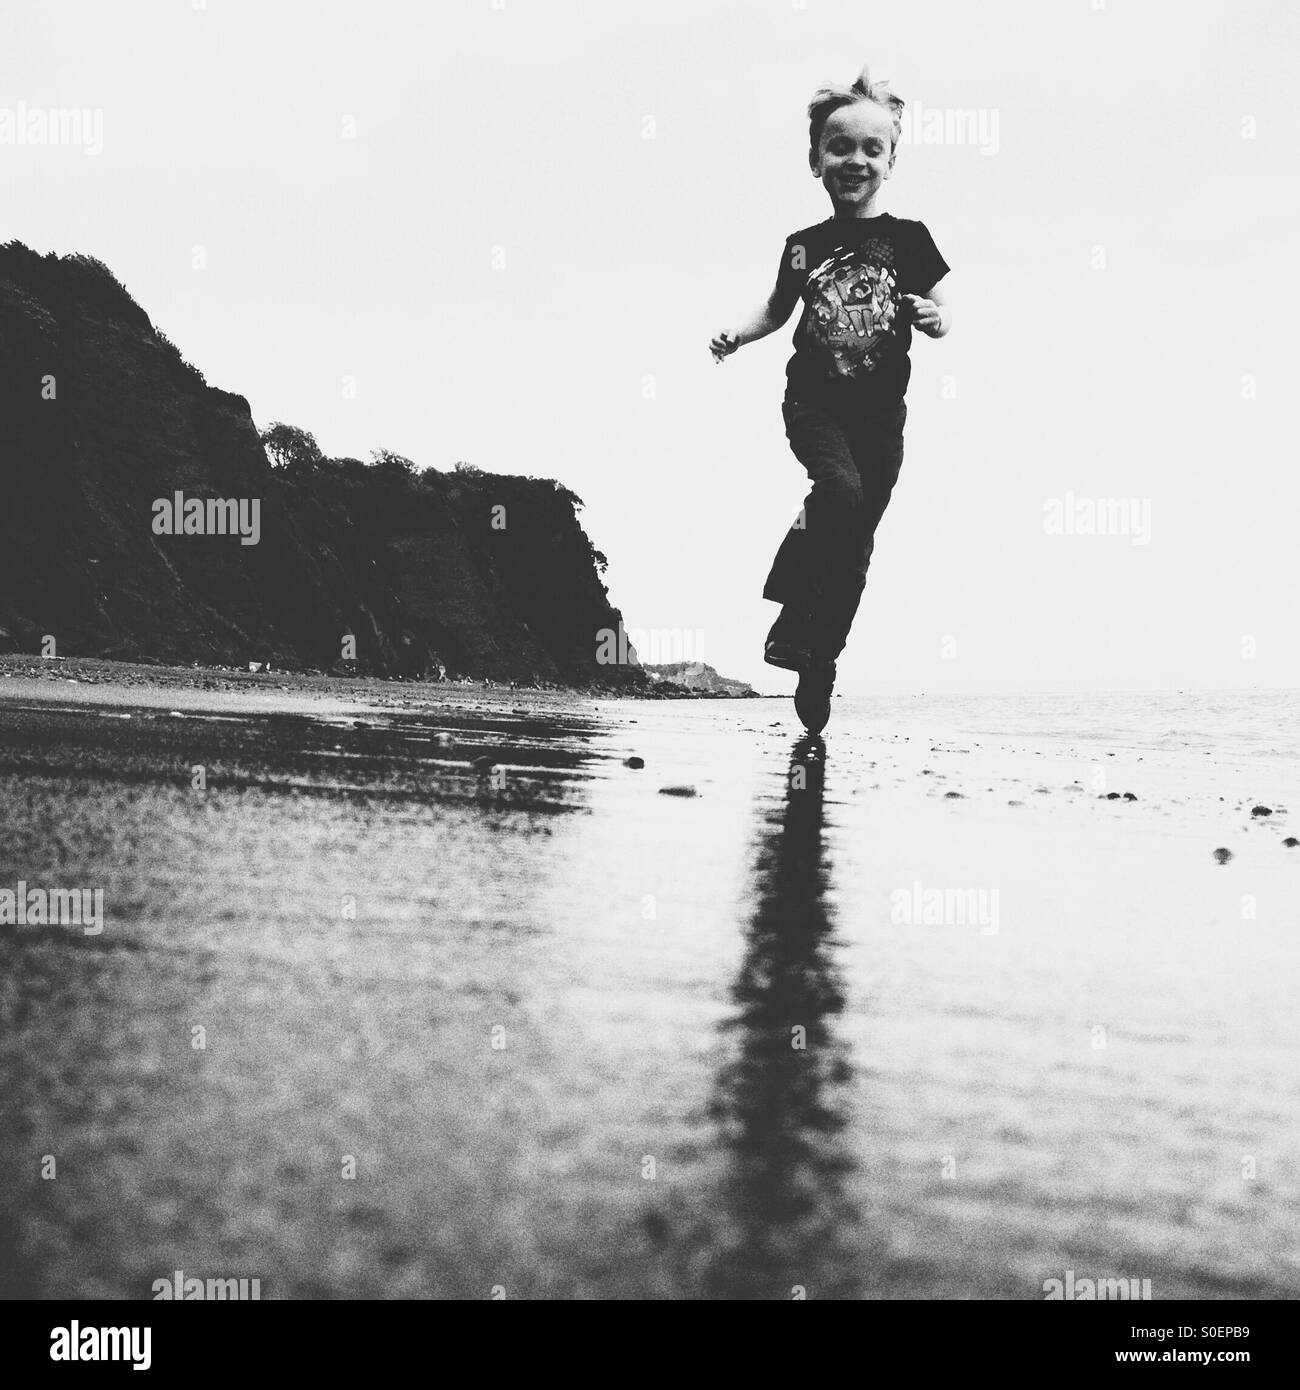 Boy running on a beach Photo Stock